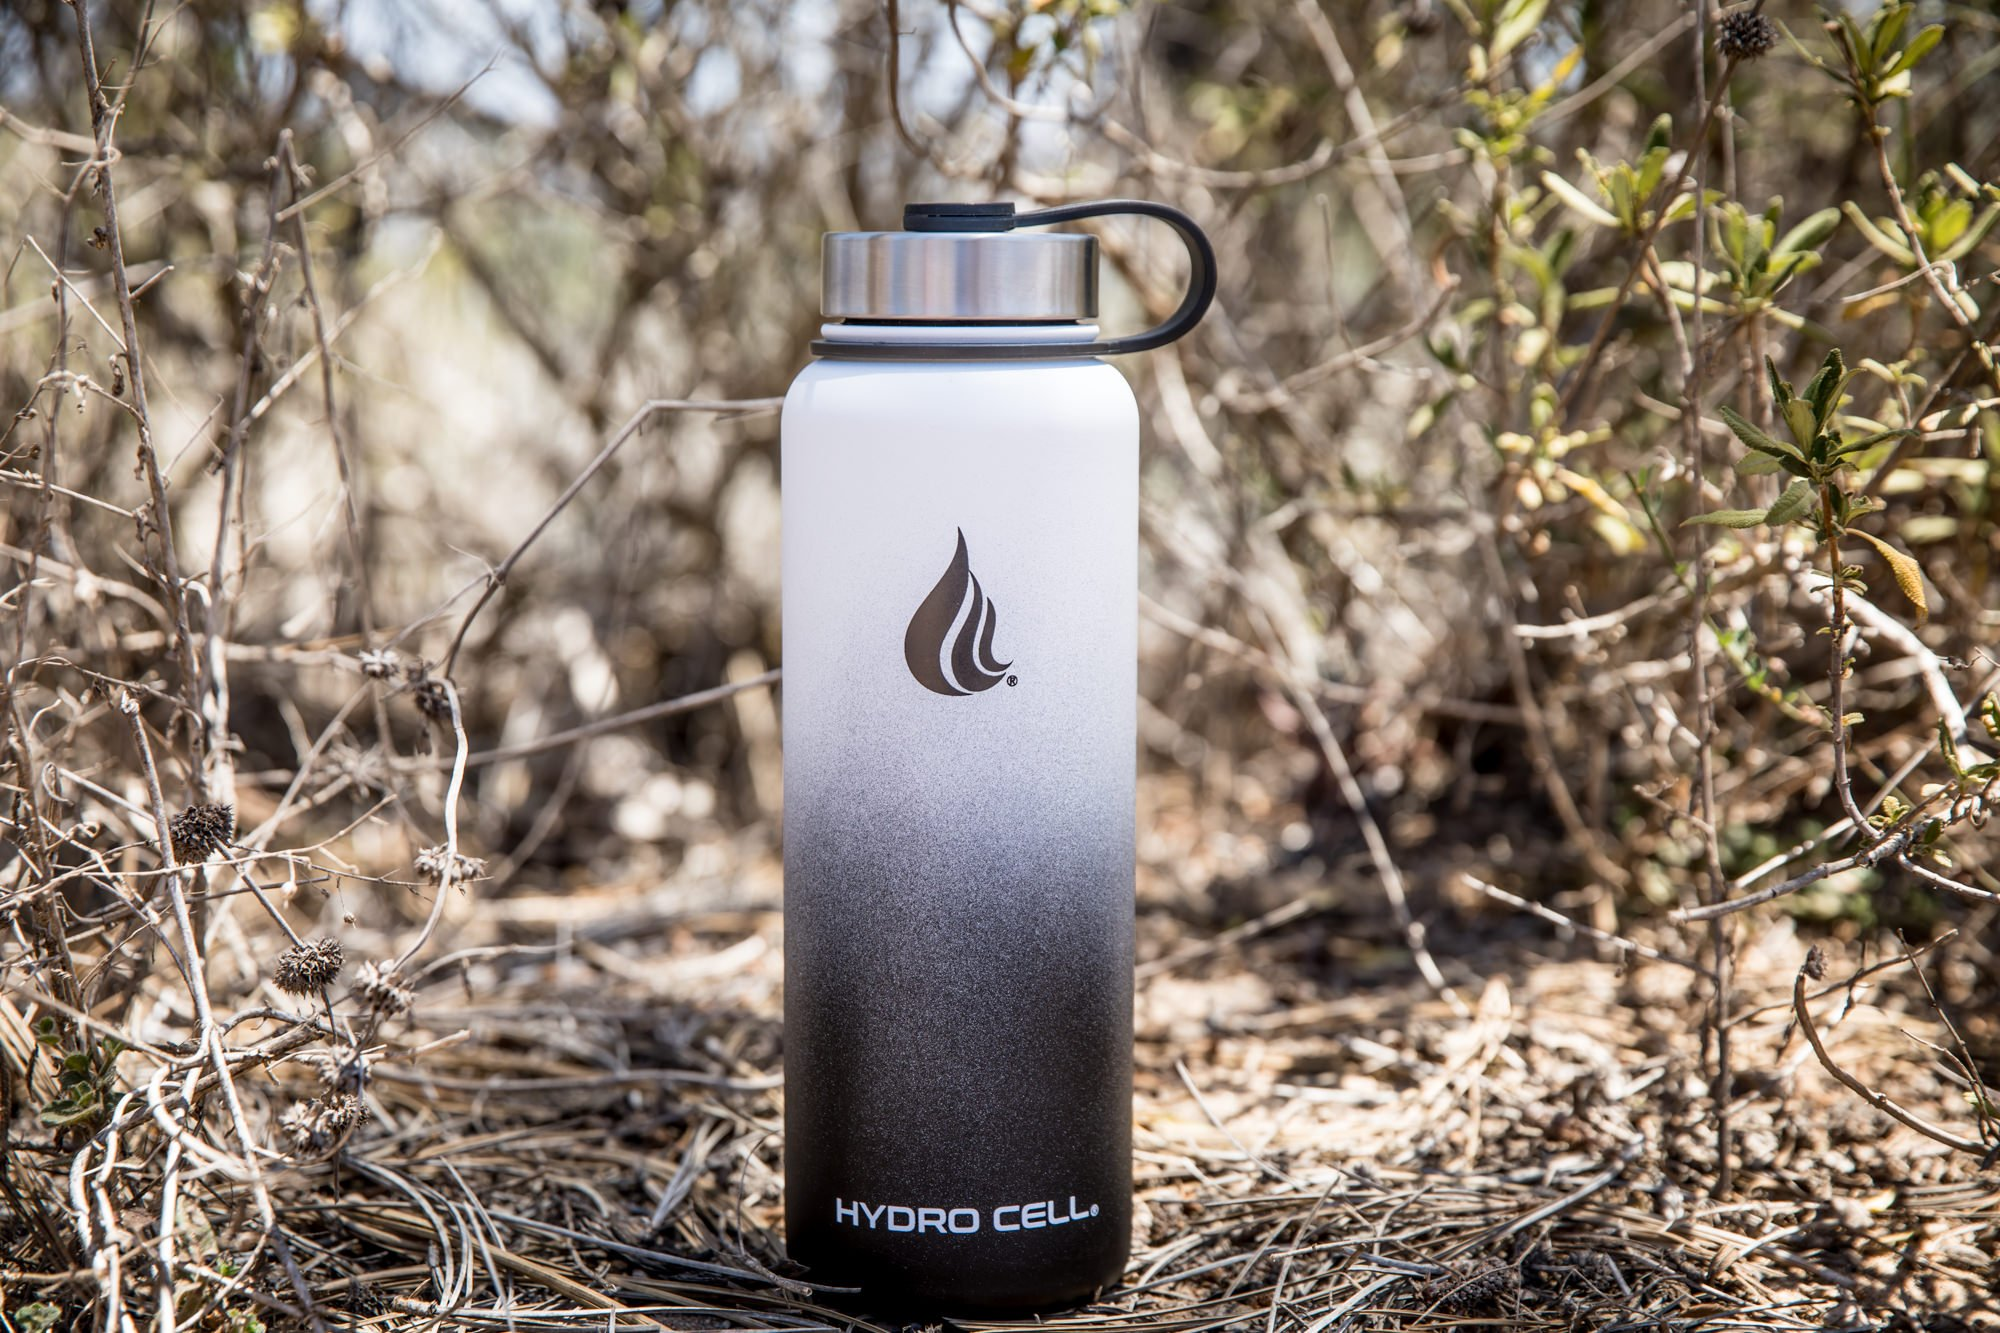 HYDRO CELL Stainless Steel Water Bottle with Straw & Wide Mouth Lids (32oz or 22oz) - Keeps Liquids Perfectly Hot or Cold with Double Wall Vacuum Insulated Sweat Proof Sport Design (Black/White 40oz)